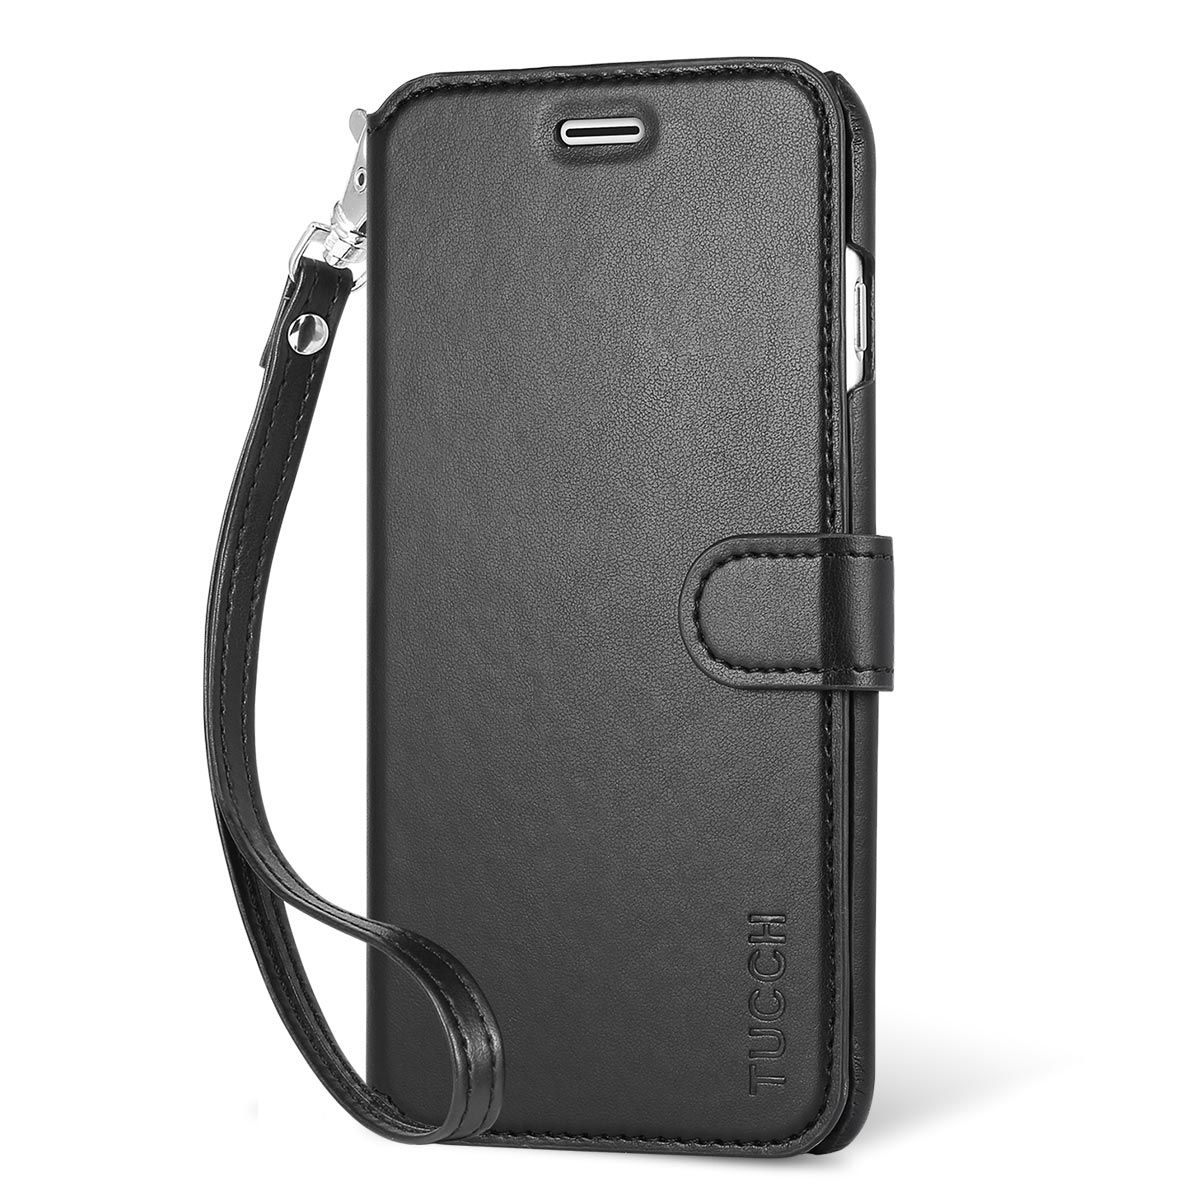 super popular 303ee 20689 TUCCH iPhone 7 Plus Wallet Case, Wrist Strap, PU Leather Case